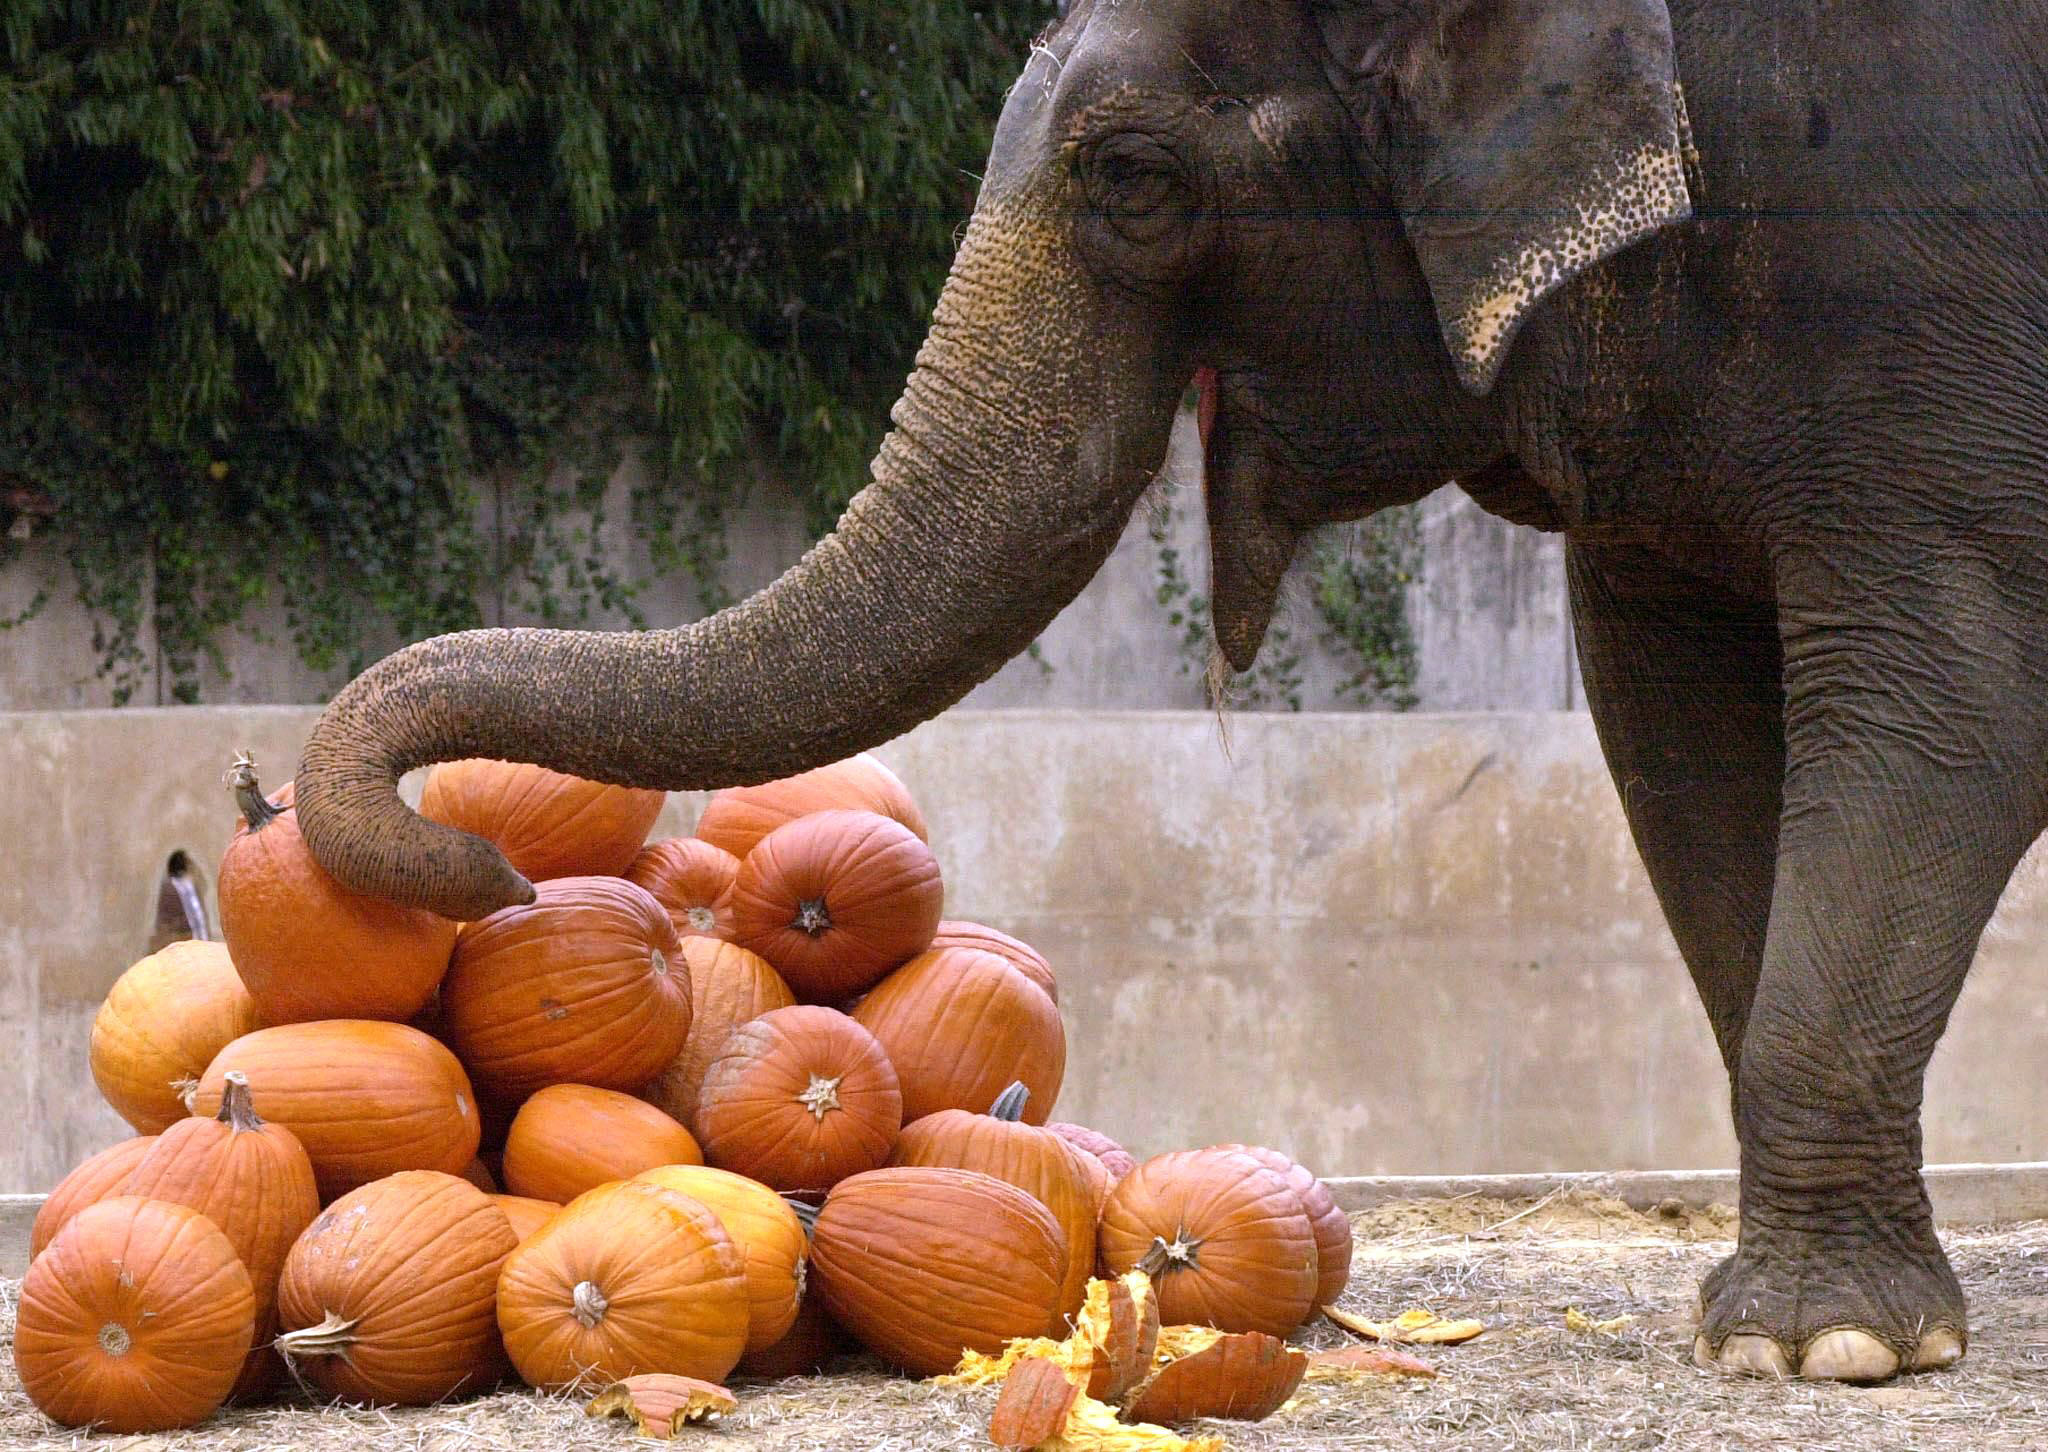 Beloved 72-year-old Asian elephant euthanized at National Zoo